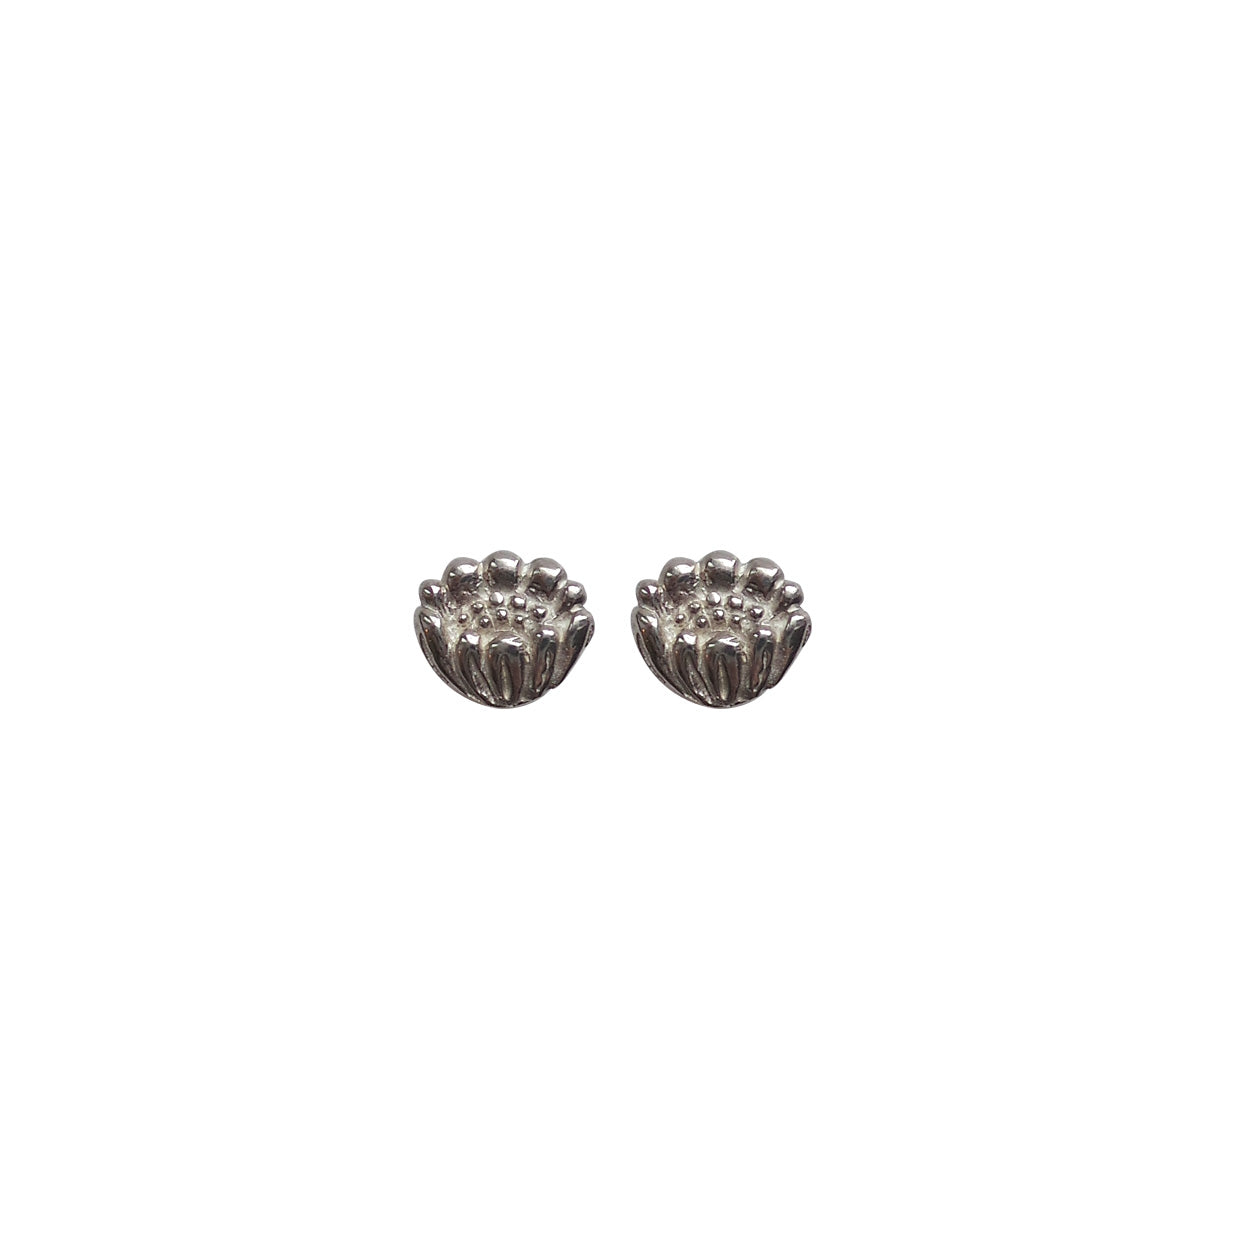 Hunt Of Hounds Adonis Flower Stud Earrings in silver. Symbol of memory.